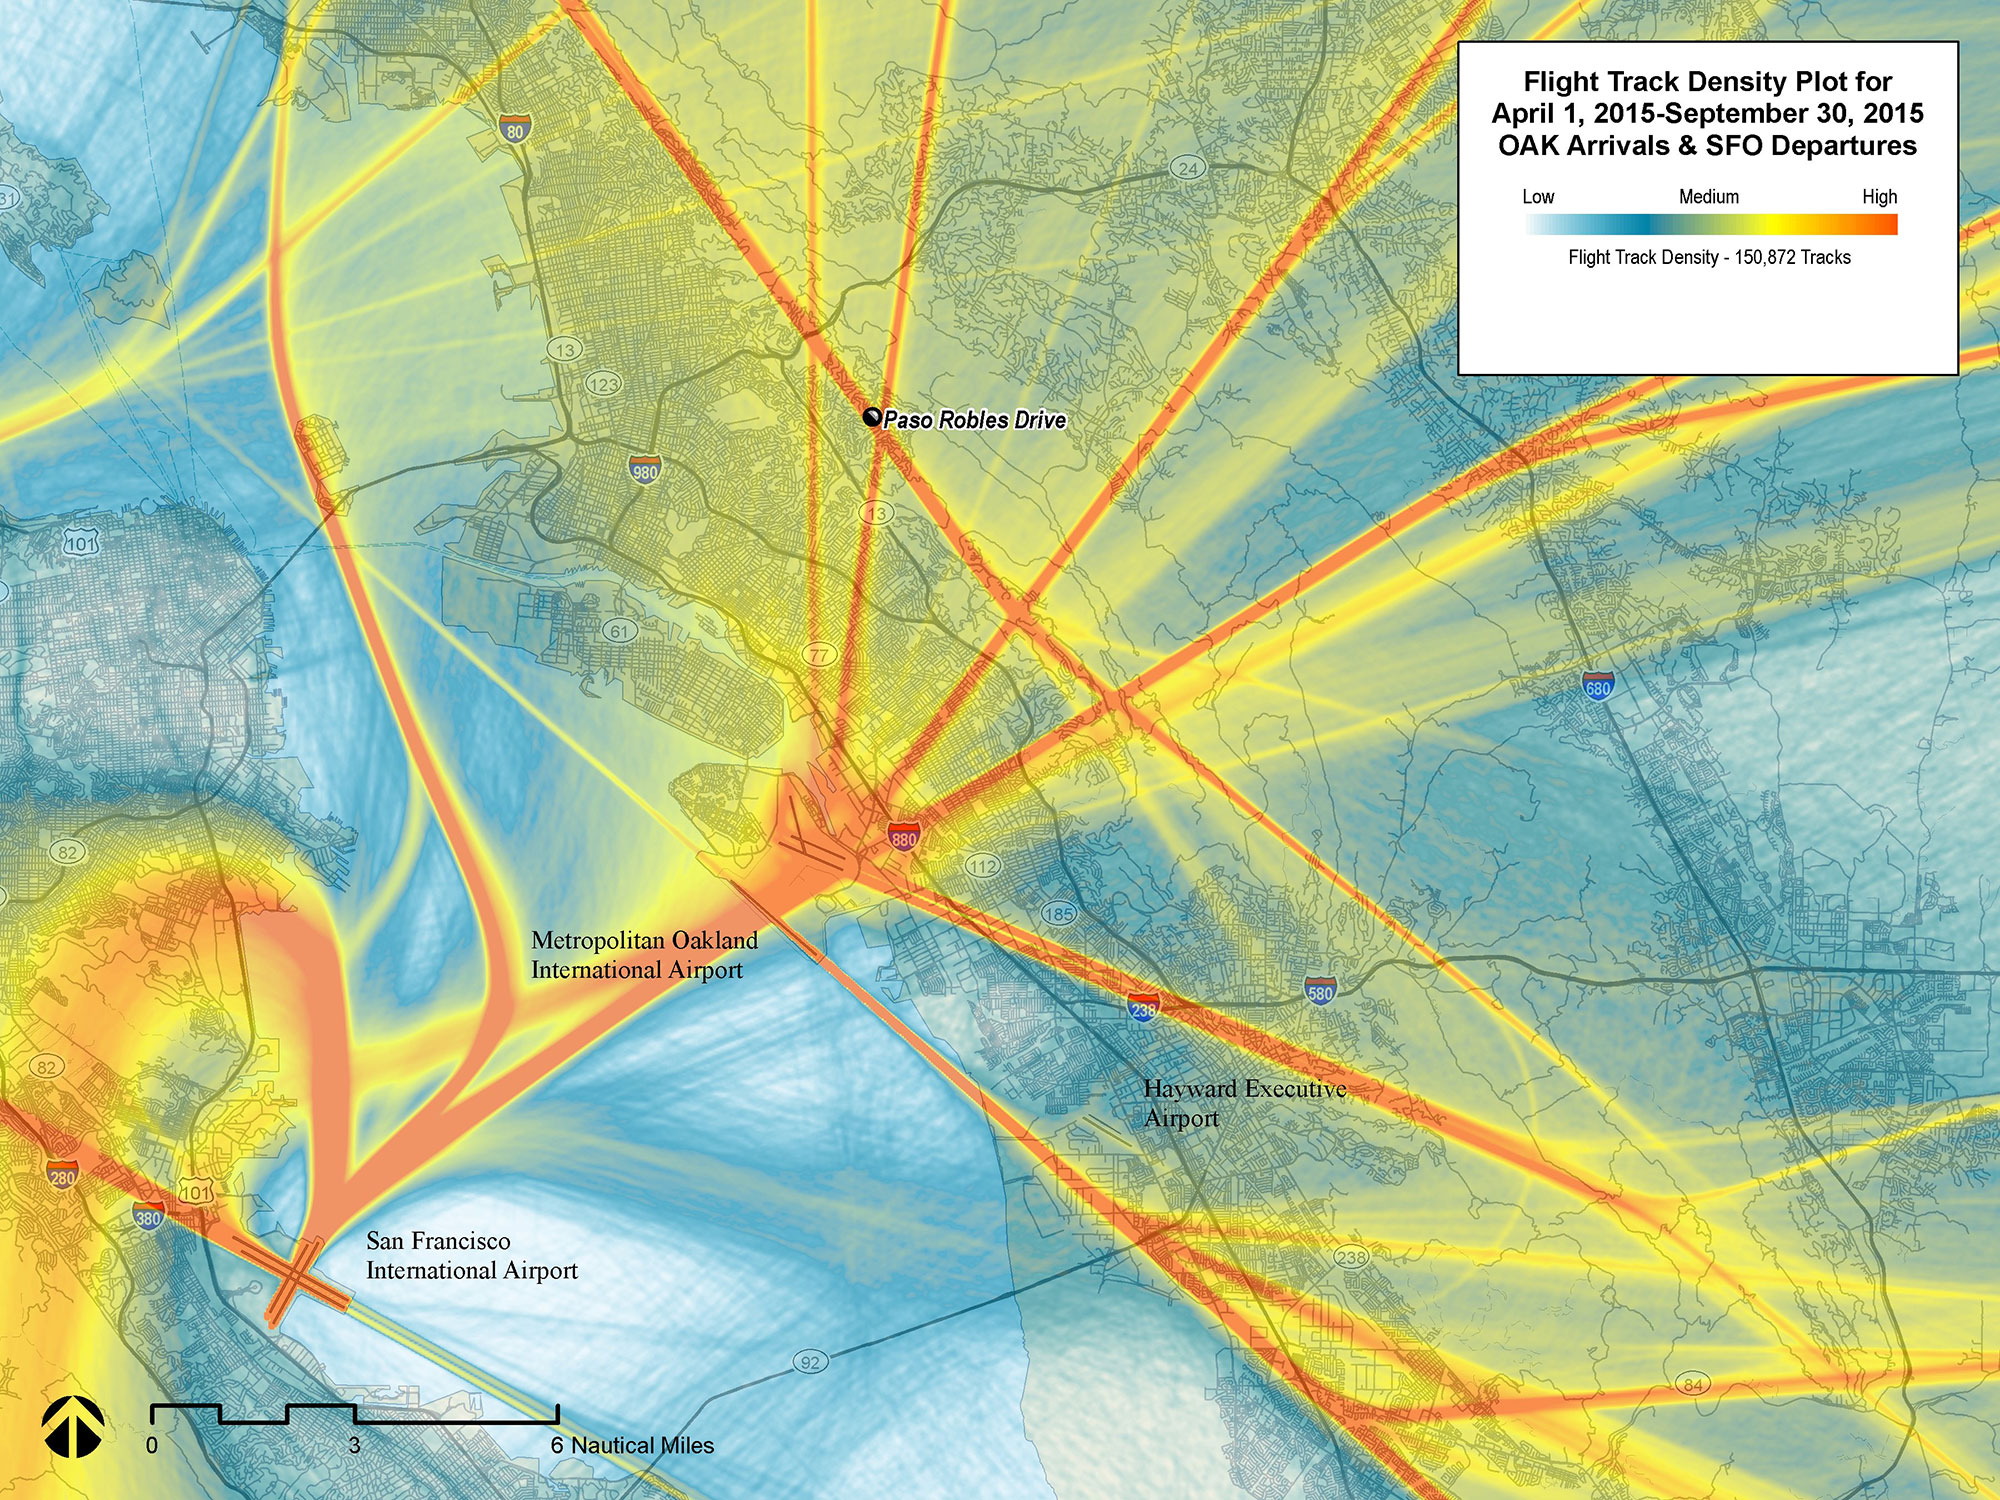 NorCal Metroplex Analysis, Oakland International Airport